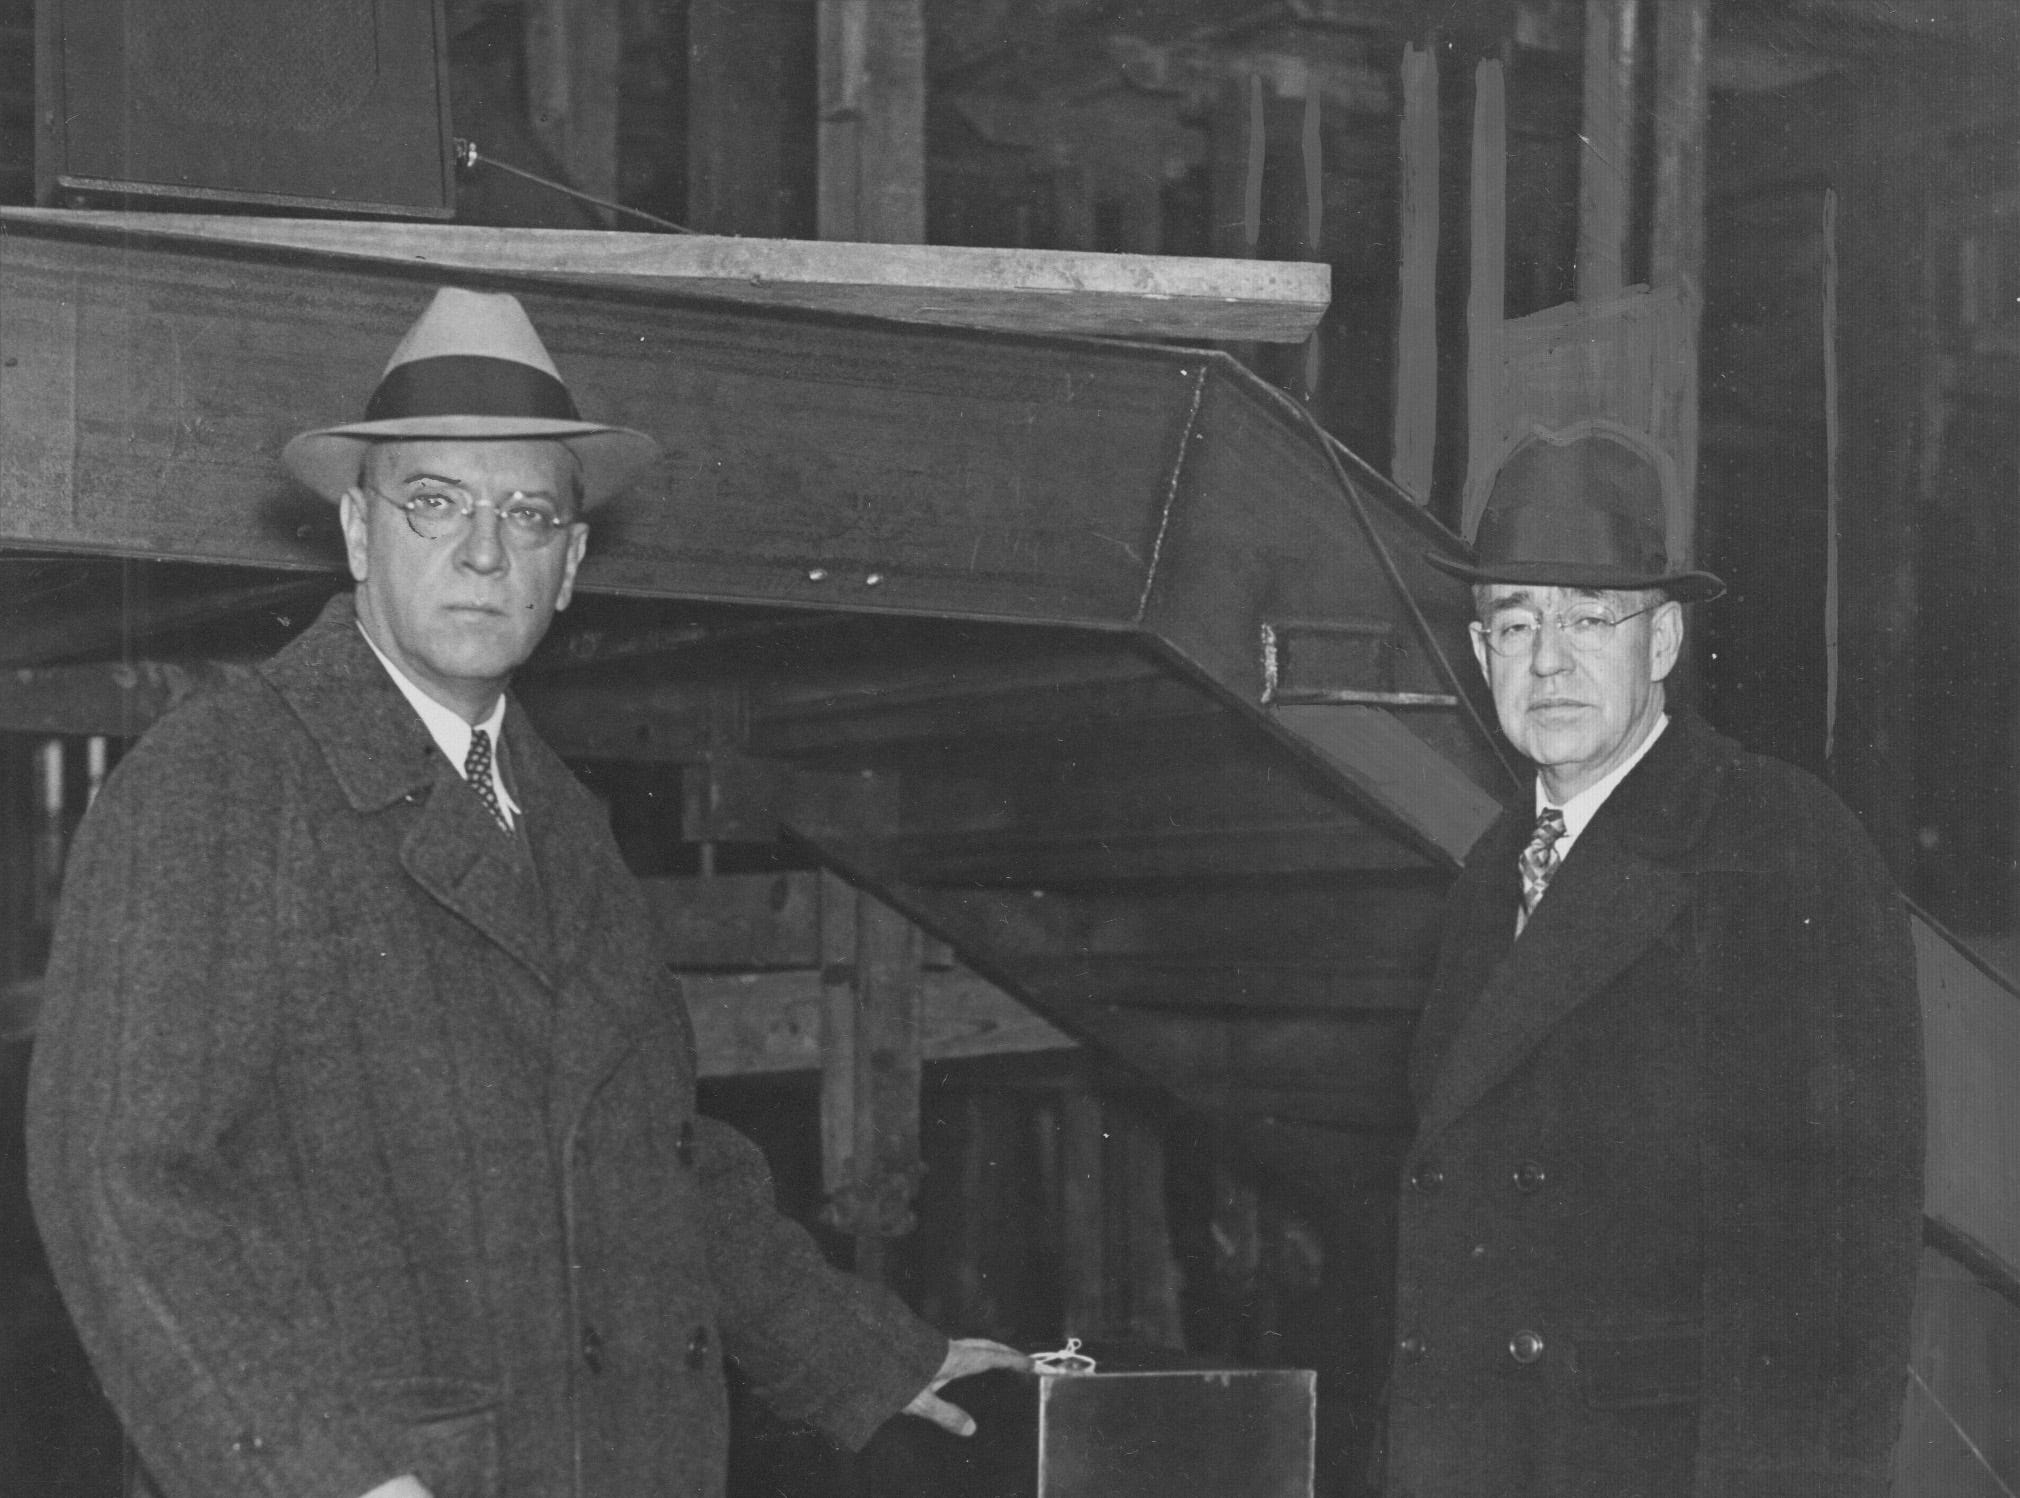 Carl Wilde, vice-president of the Board of School Commissioners (left), is shown laying the cornerstone to the addition at George Washington High School as Walter Gingery, school principal assisted.